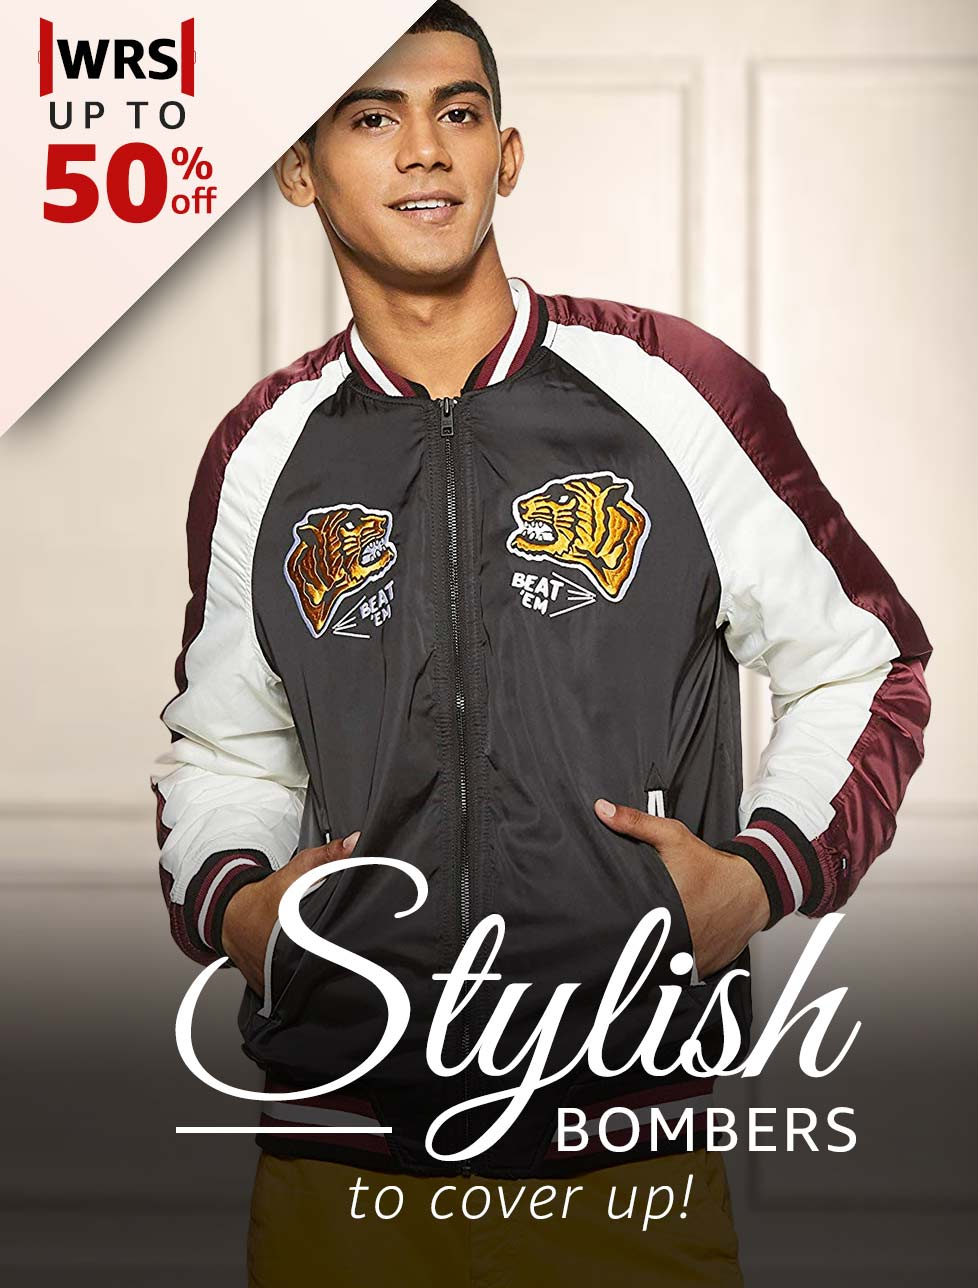 Stylish Bombers to cover up